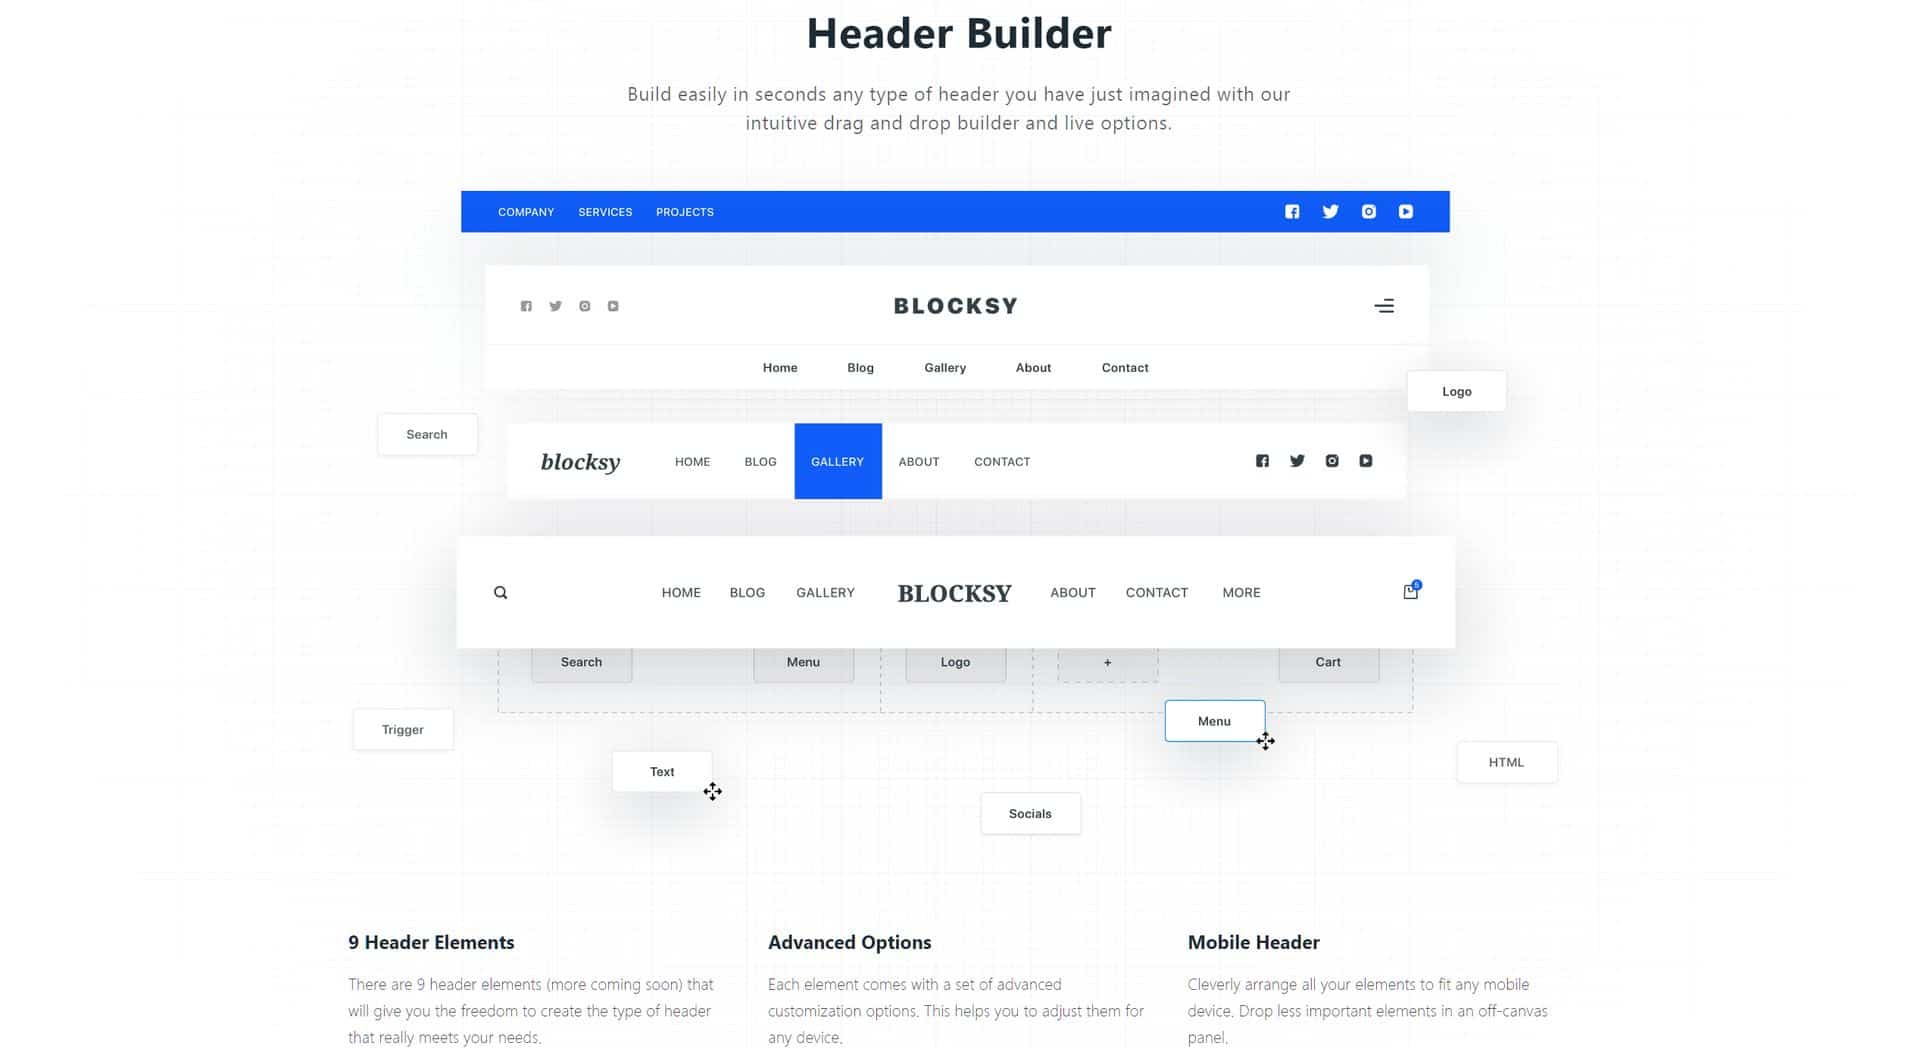 Blocksy Theme - Drag and Drop Header Builder